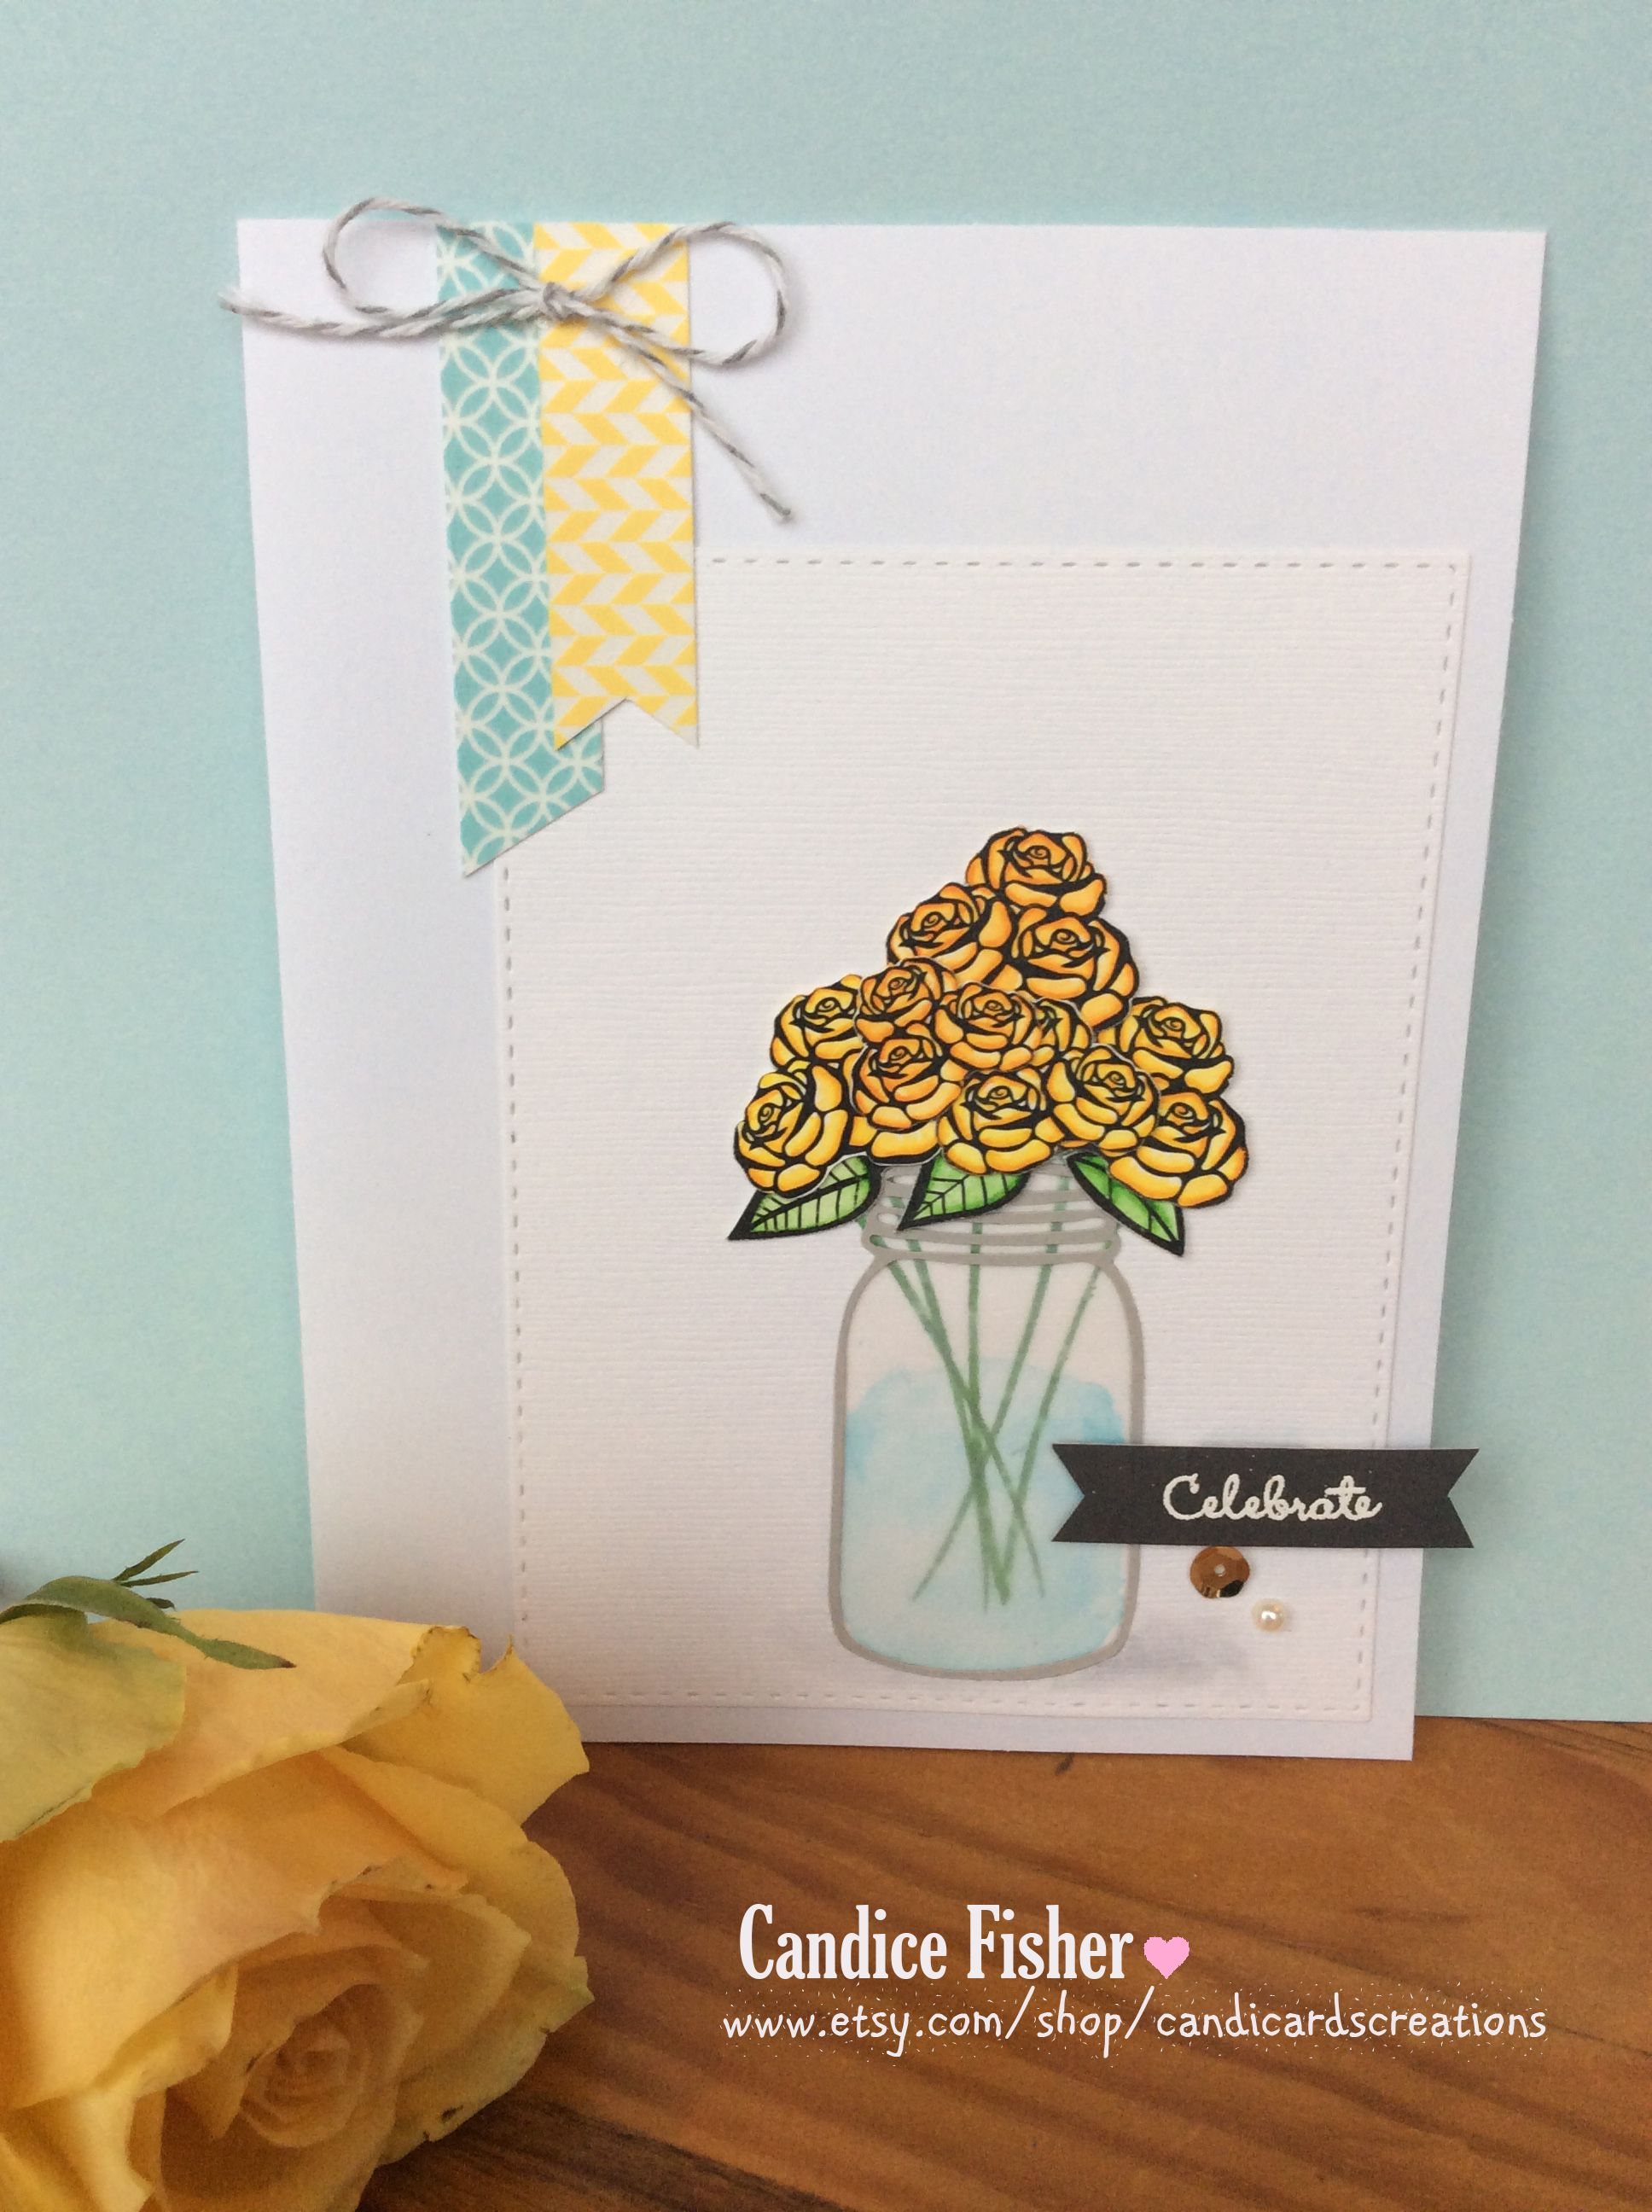 I Love The Water Effect In The Mason Jar From The Vellum Paper And